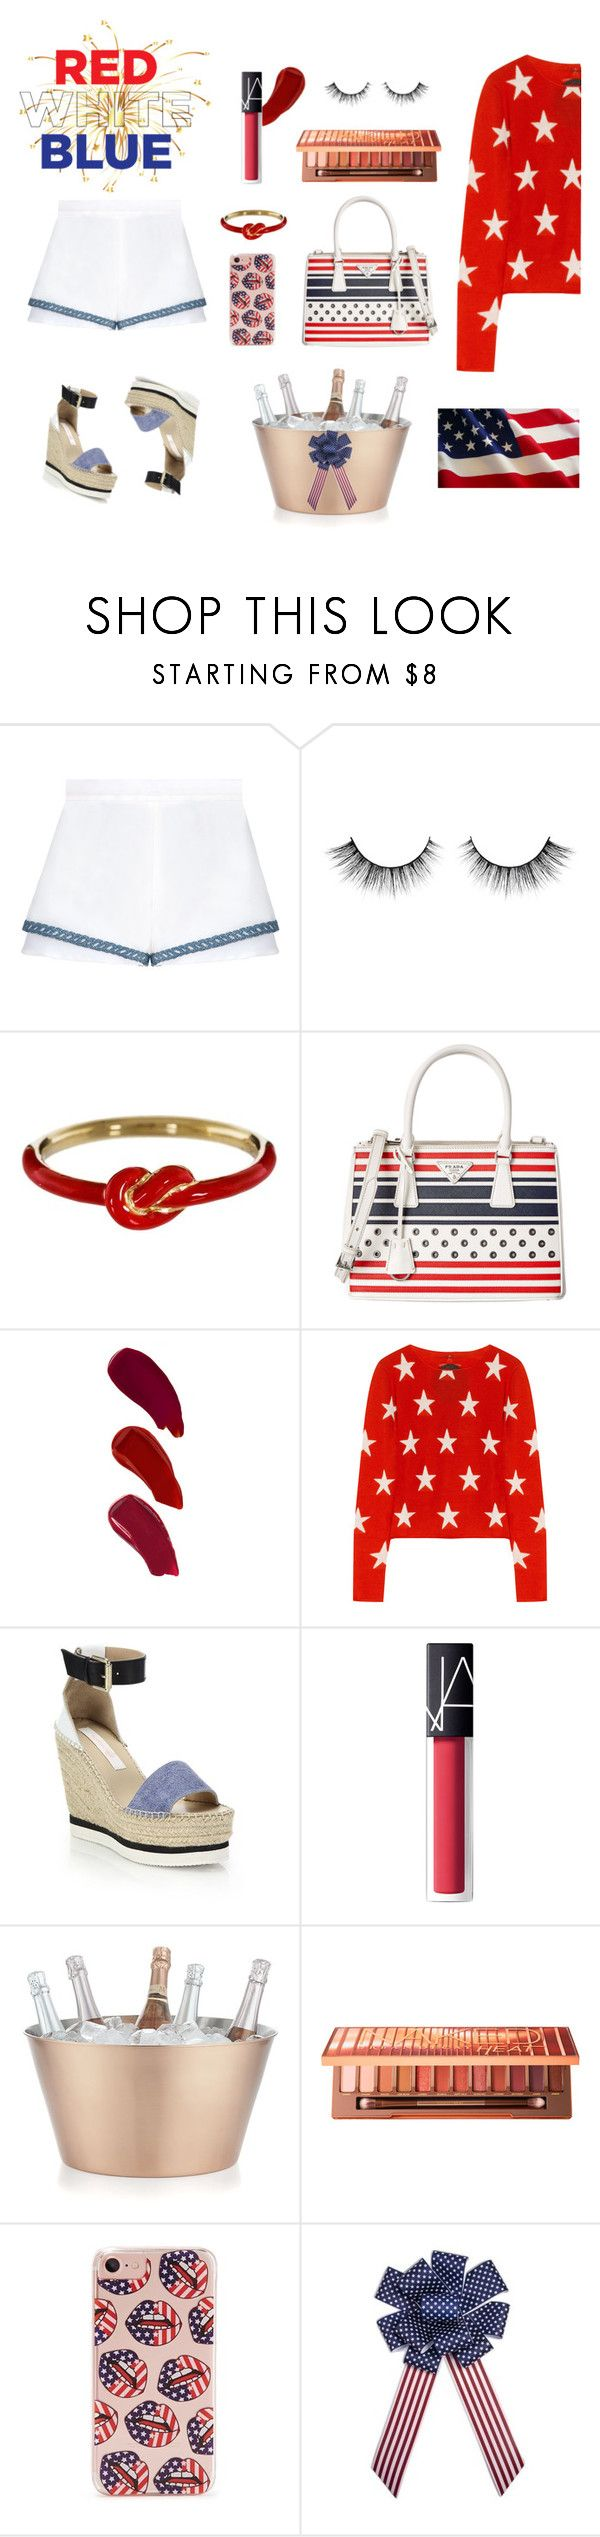 """Red, White & Blue: Celebrate the 4th!"" by spark-llay ❤ liked on Polyvore featuring Nora Kogan, Prada, Ellis Faas, Banjo & Matilda, See by Chloé, NARS Cosmetics, Crate and Barrel, Urban Decay, Forever 21 and fourthofjuly"